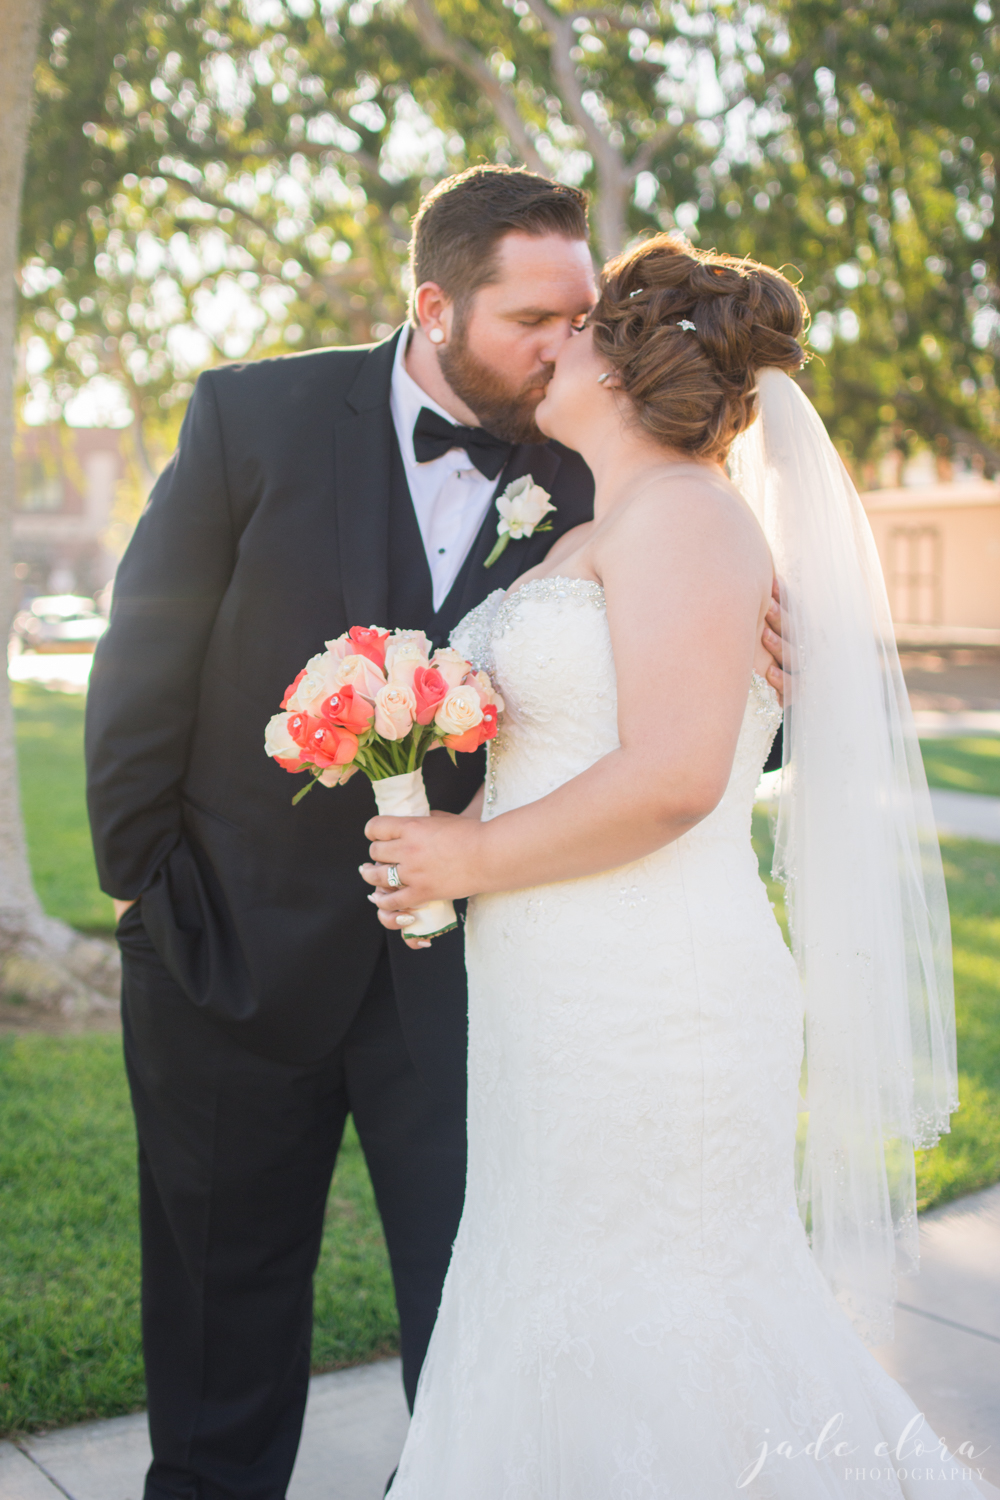 Glendale-Wedding-Photographer-Blog-Jade-Elora-Blog-MGM-15.jpg